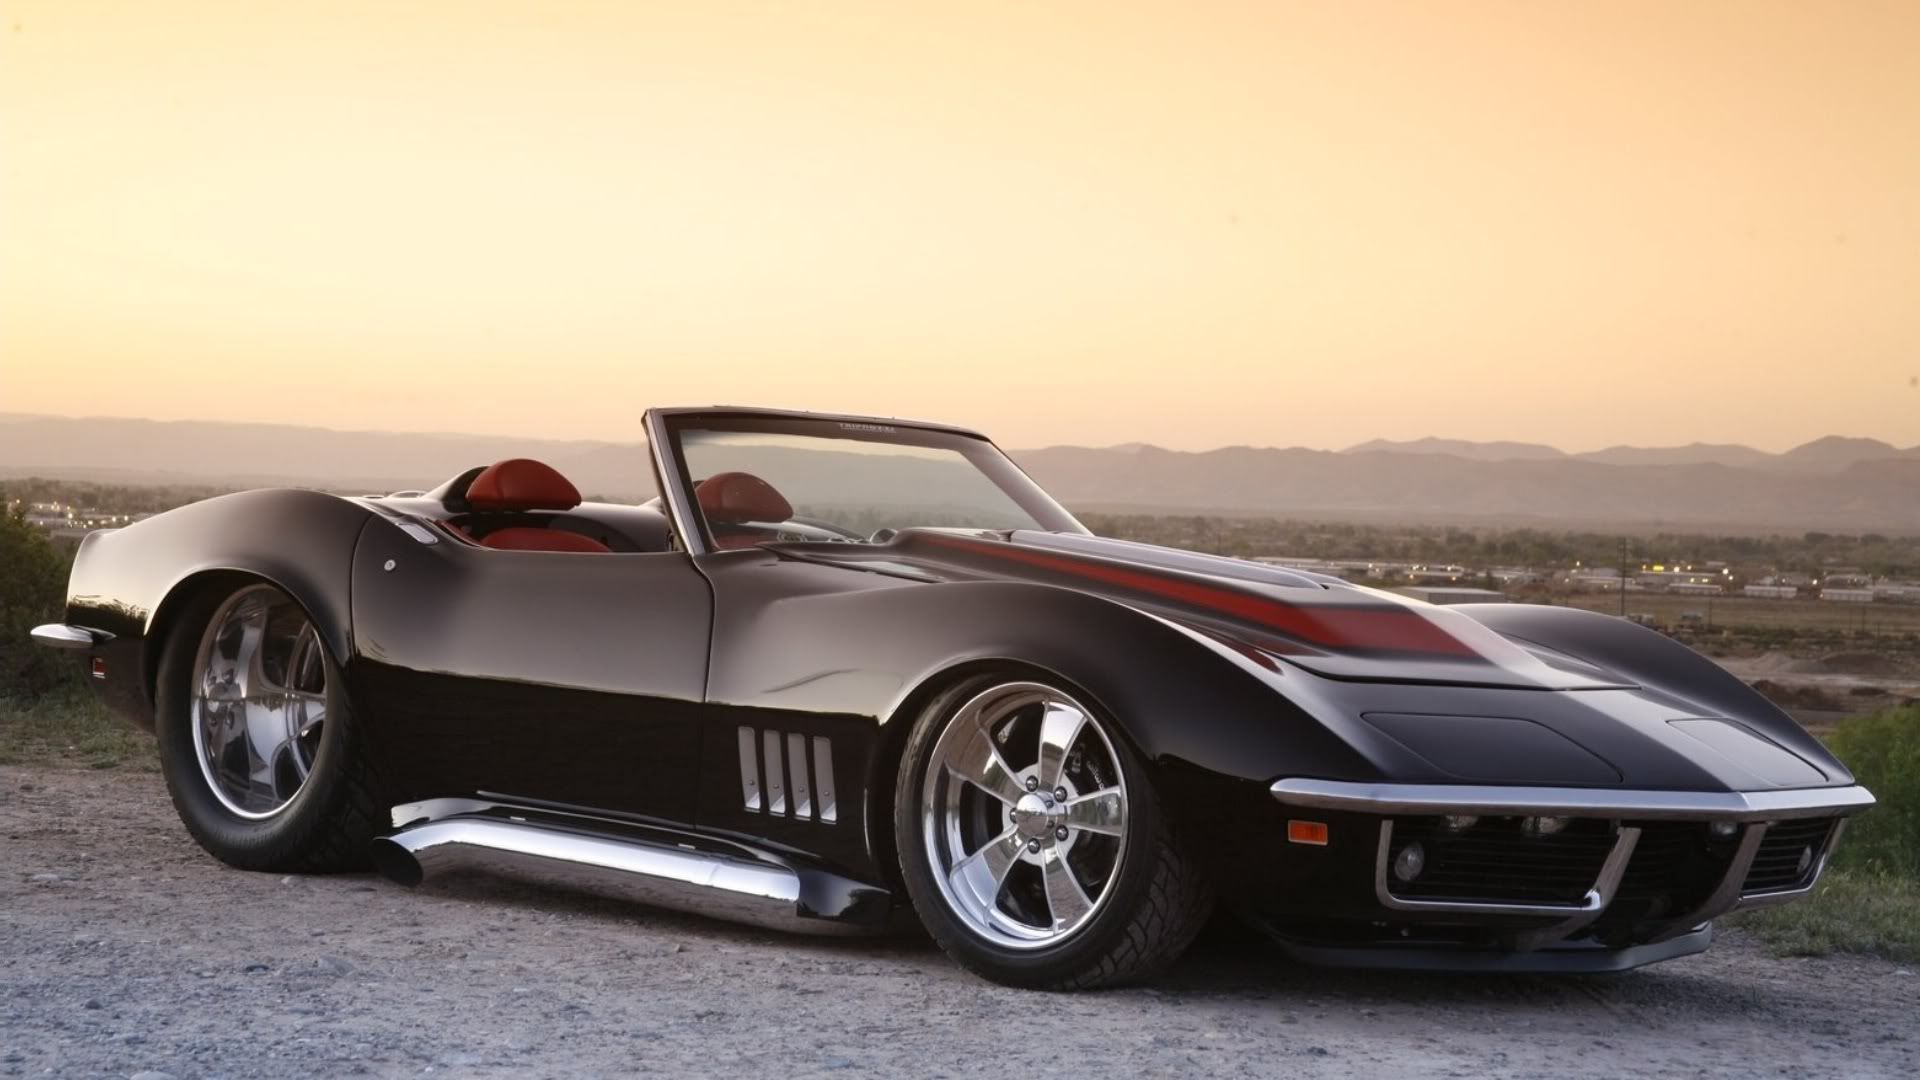 Corvette From The 1969